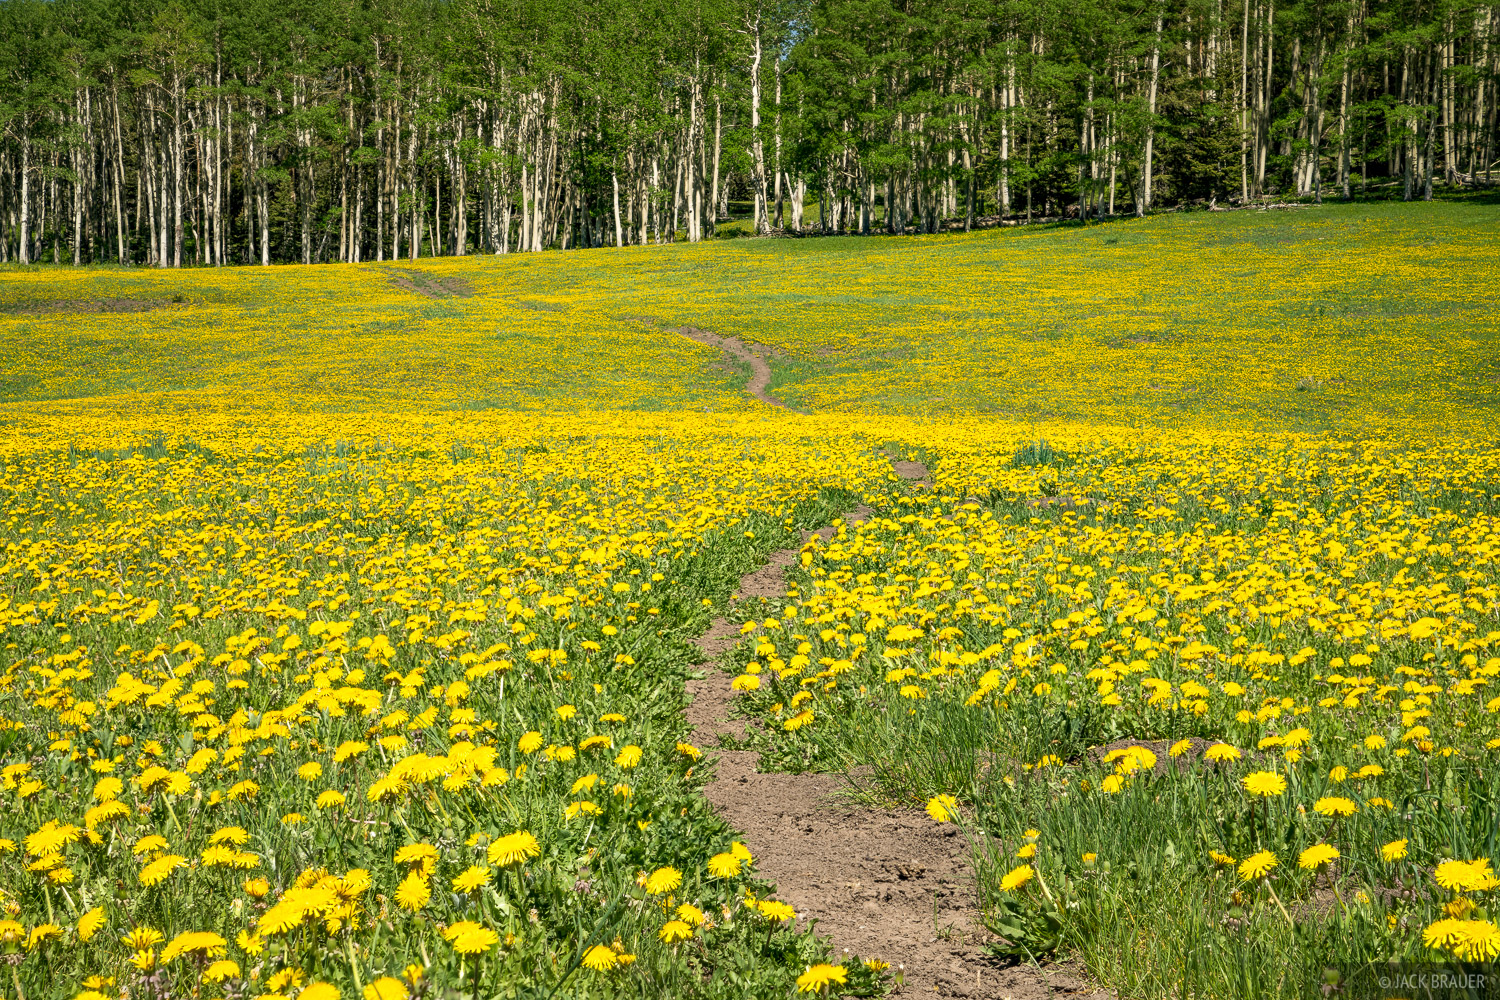 A trail winds through a meadow full of dandelions.